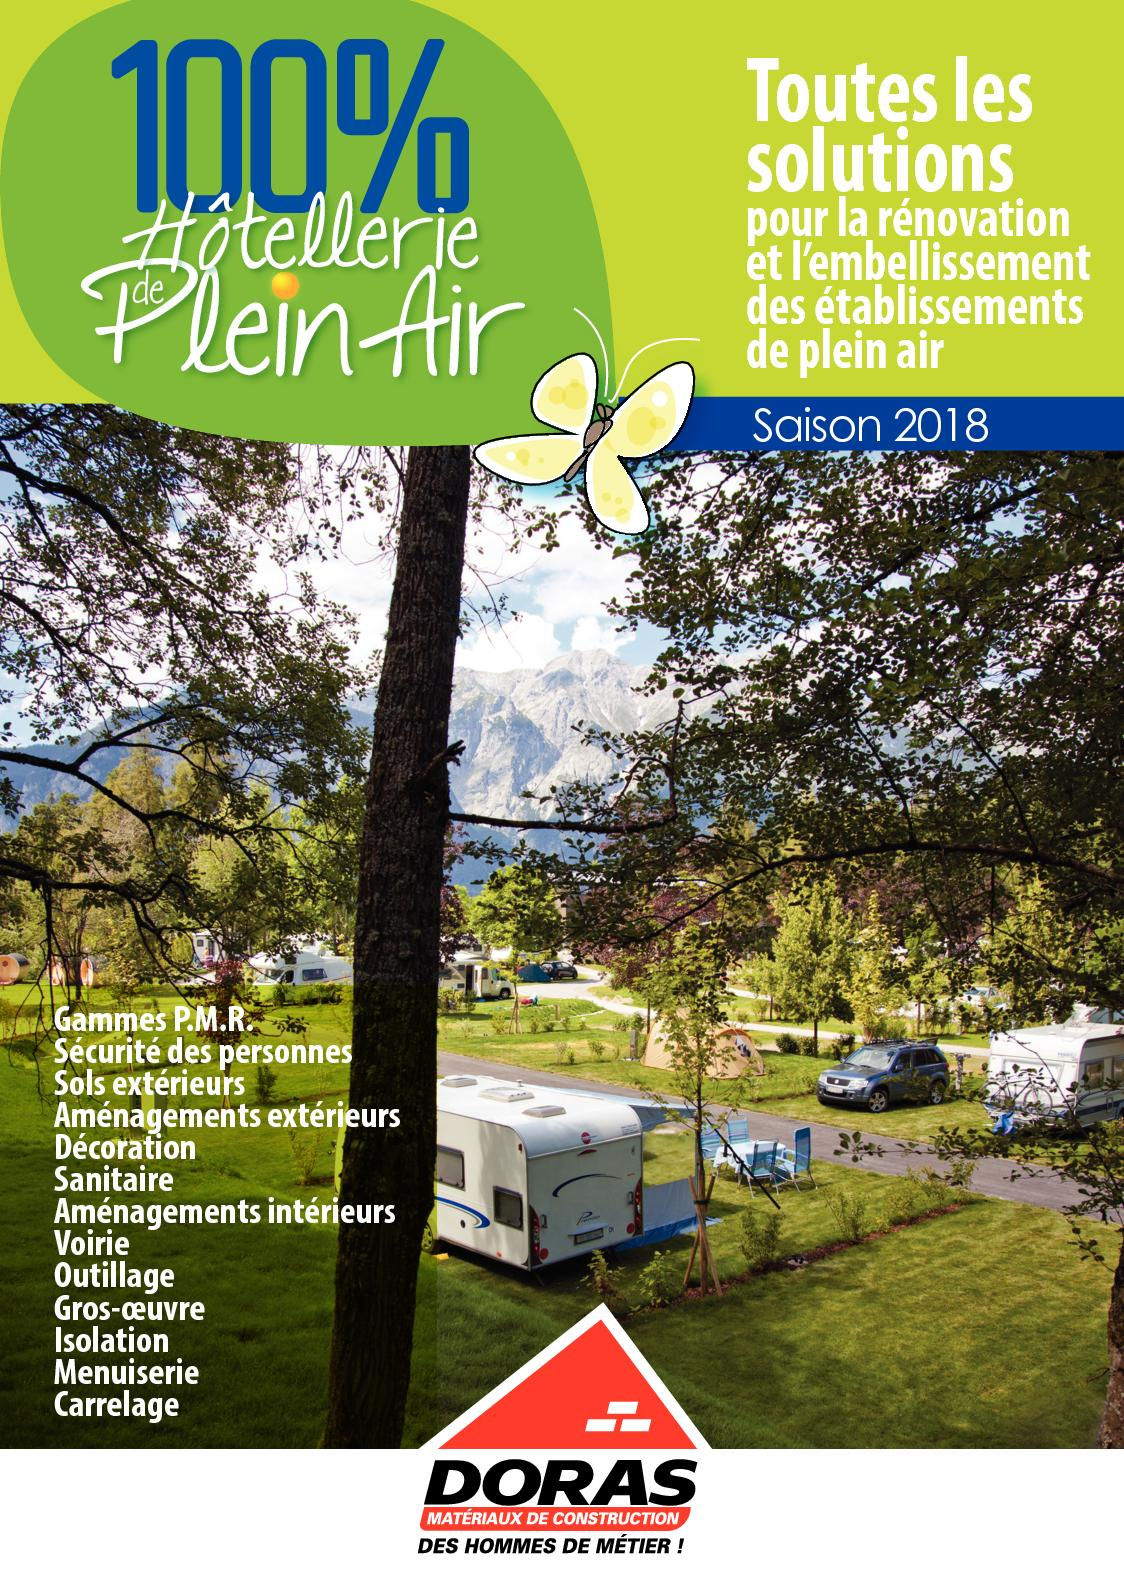 Pierre De Parement Exterieur Samse Calaméo Doras Catalogue Hôtellerie De Plein Air 2018